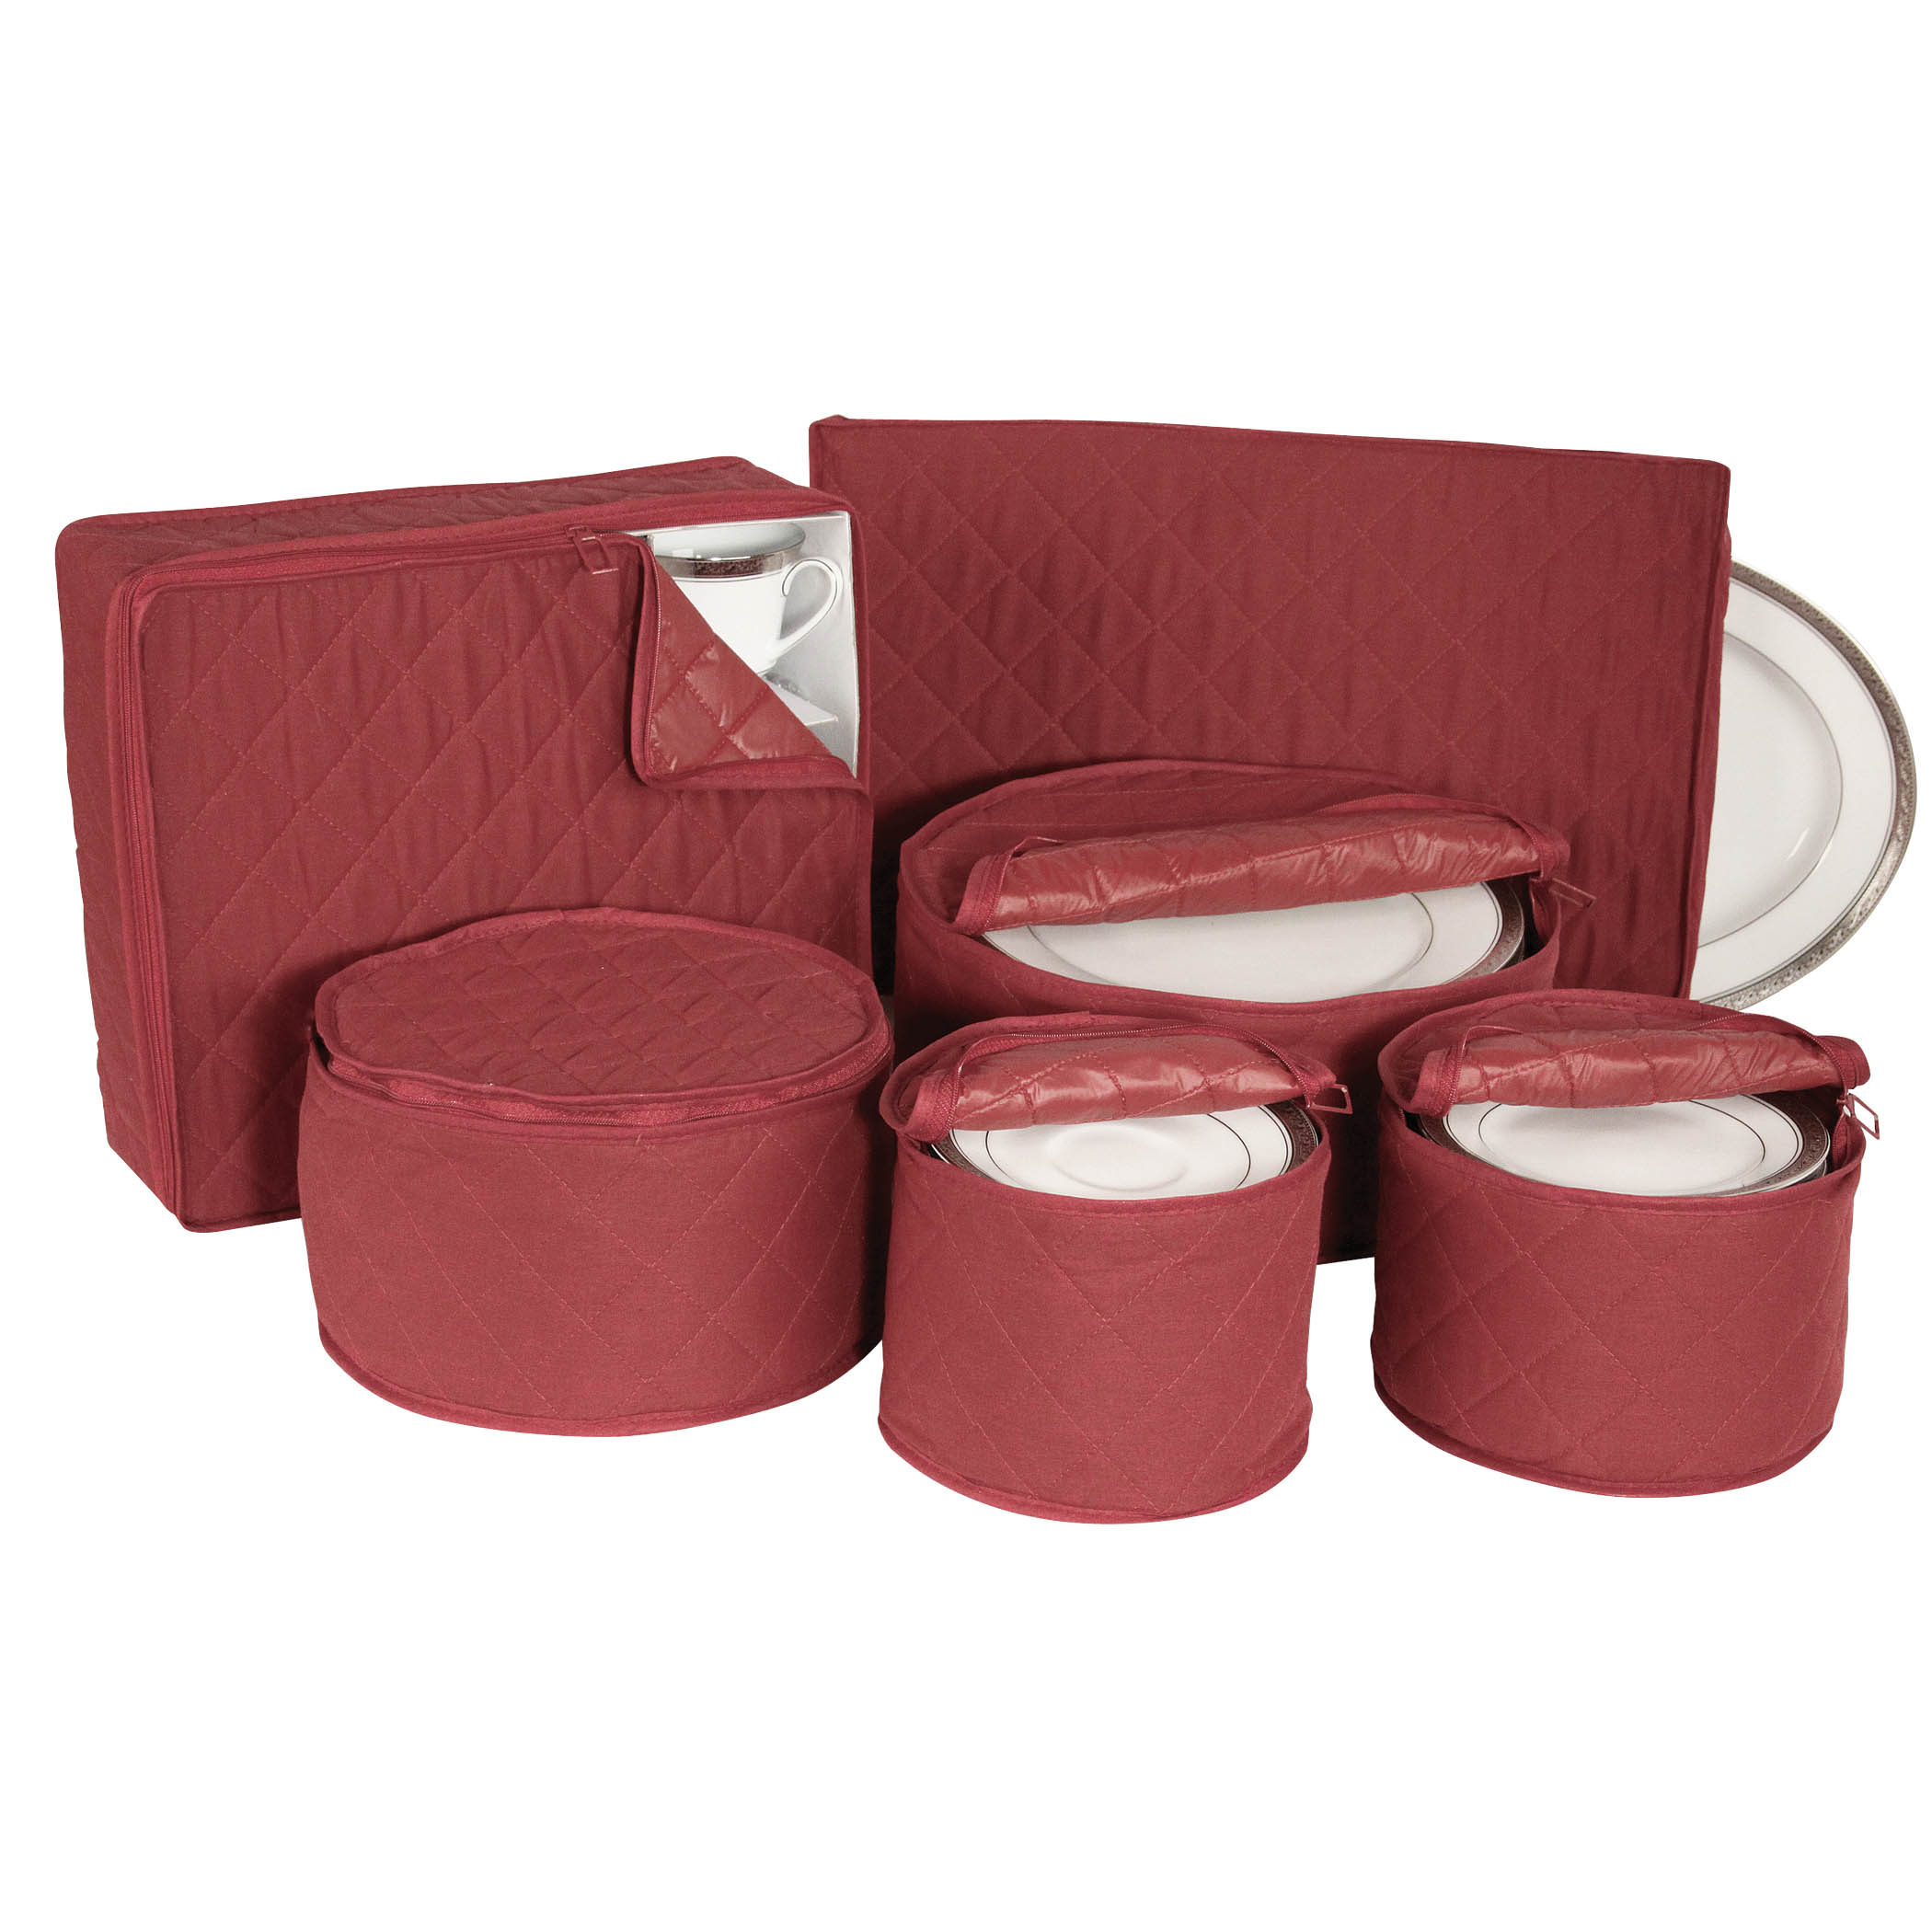 Quilted China Keepers 6pc Starter Set Crimson Ebay